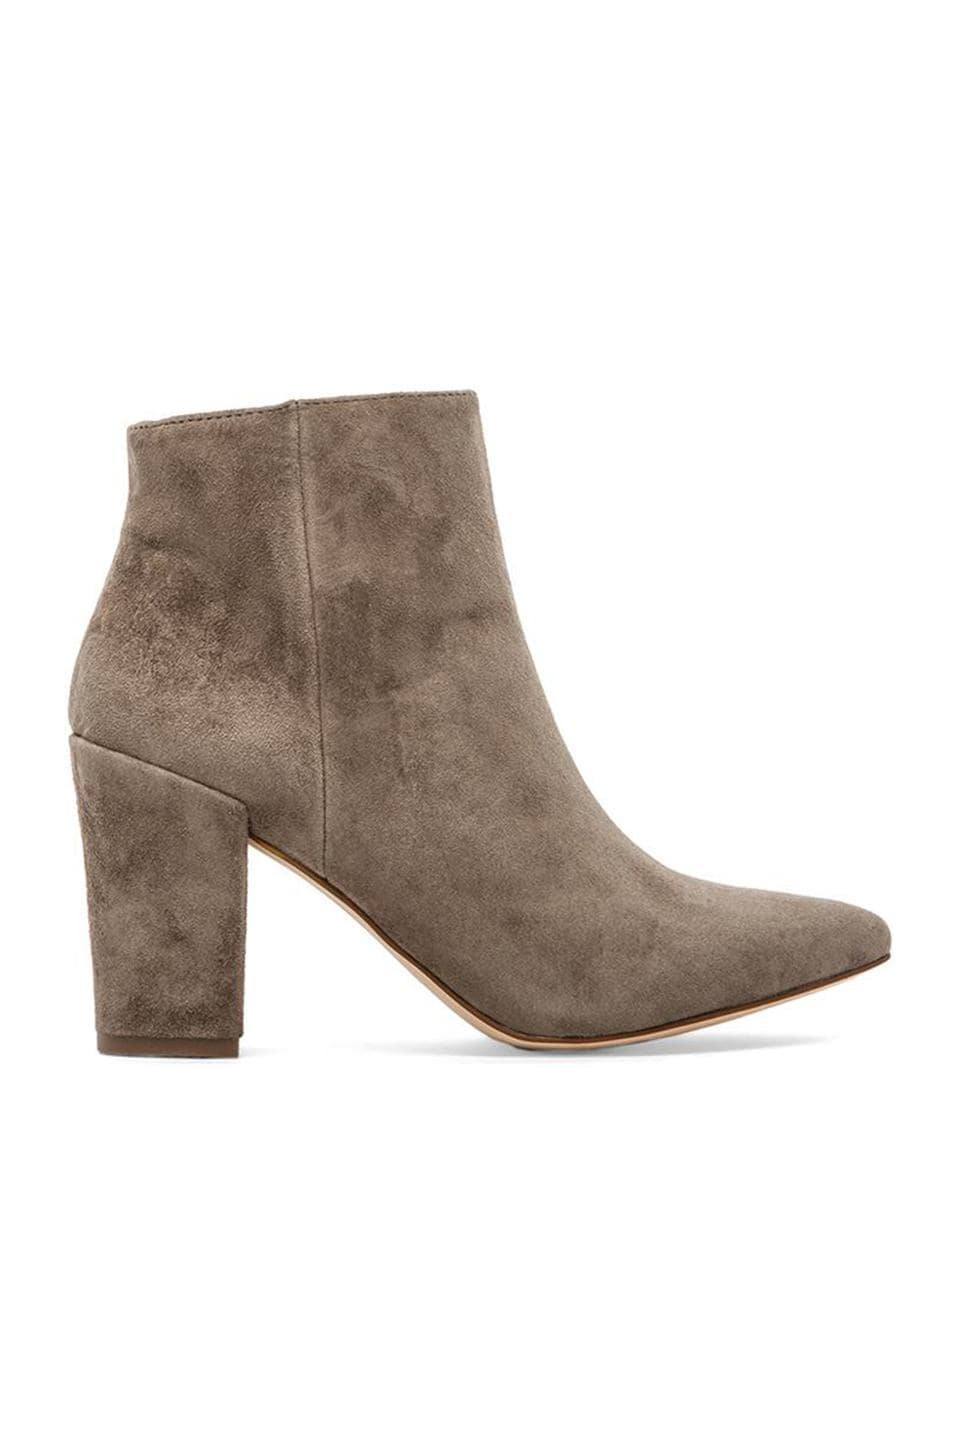 Steven Lidiaa Bootie in Taupe Suede